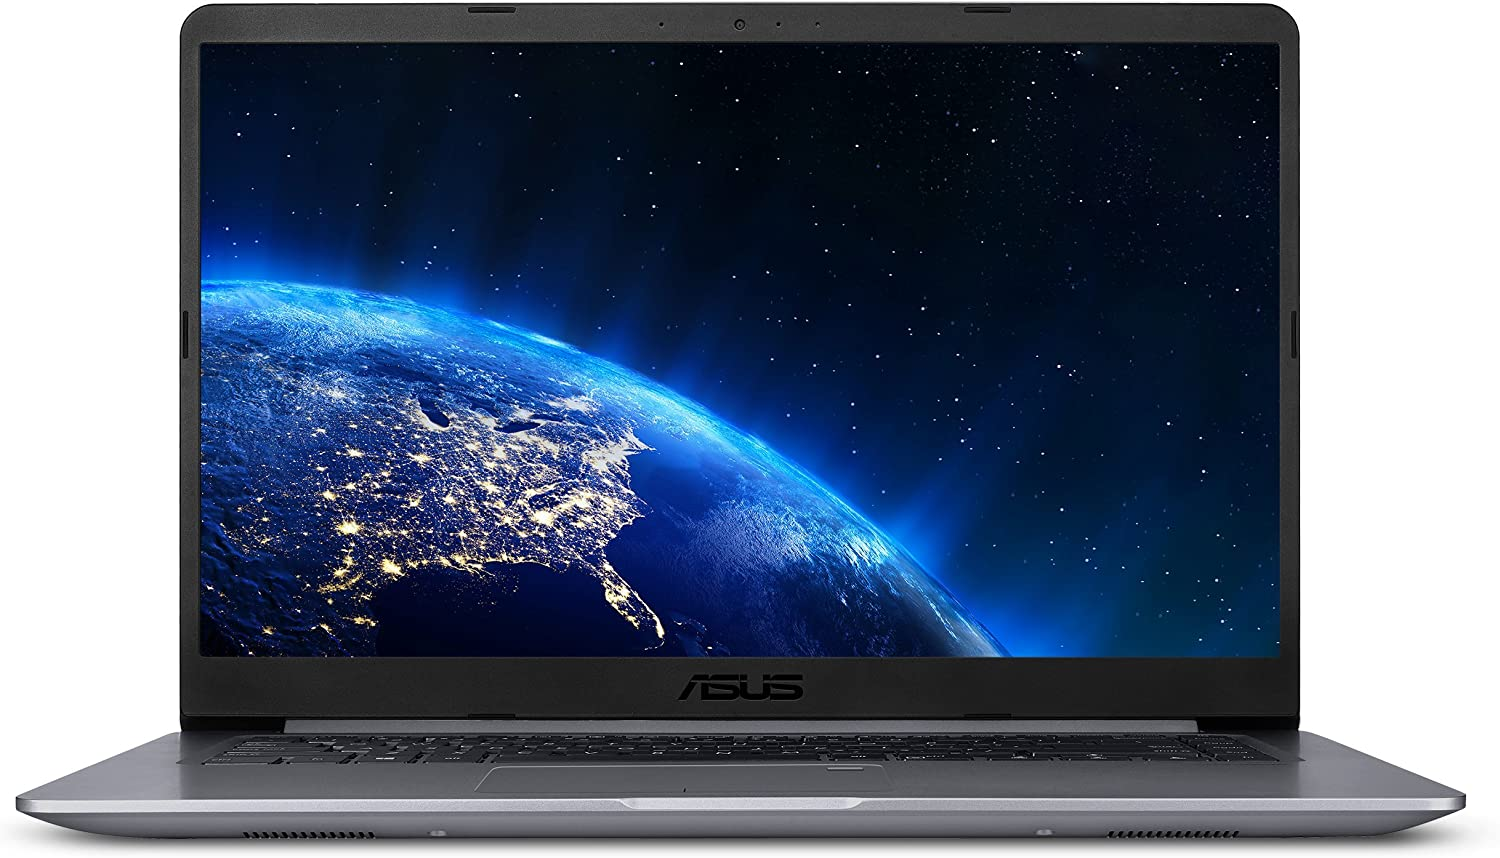 ASUS VivoBook F510UA-AH55 FHD, 8th Gen Intel Core i5-8250U, 8GB DDR4 RAM, 128GB SSD+1TB HDD, USB Type-C, ASUS NanoEdge, Win 10 (Renewed)